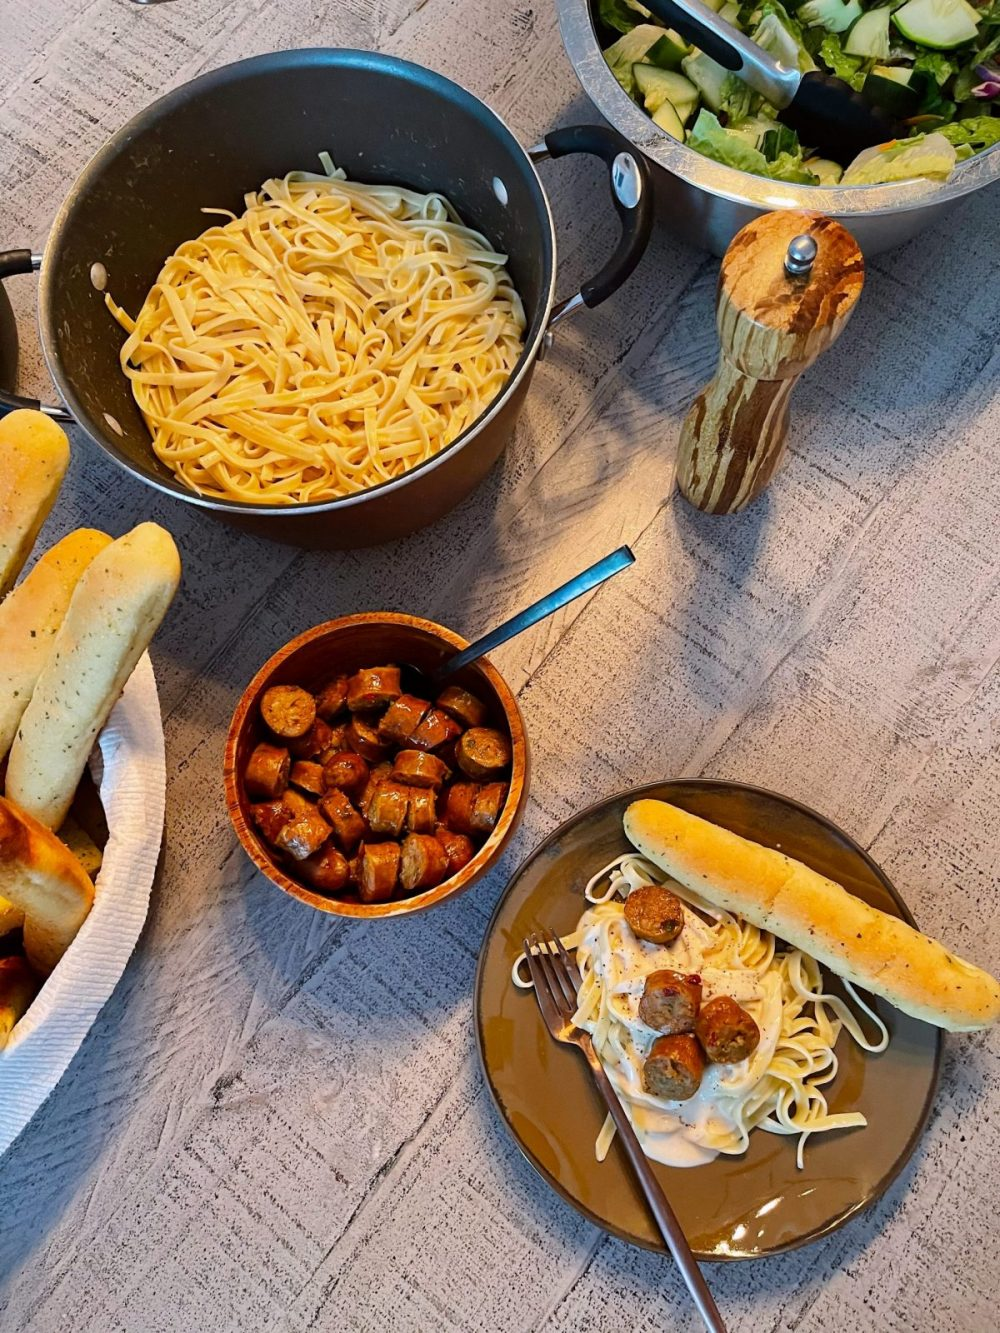 Omaha Steaks Meals featured by top FL lifestyle blogger, Tabitha Blue of Fresh Mommy Blog. - Italian Sausage Alfredo | Omaha Steaks Meals by popular Florida lifestyle blog, Fresh Mommy Blog: image of cut up sausage next to fettuccine noodles and a bowl of salad.